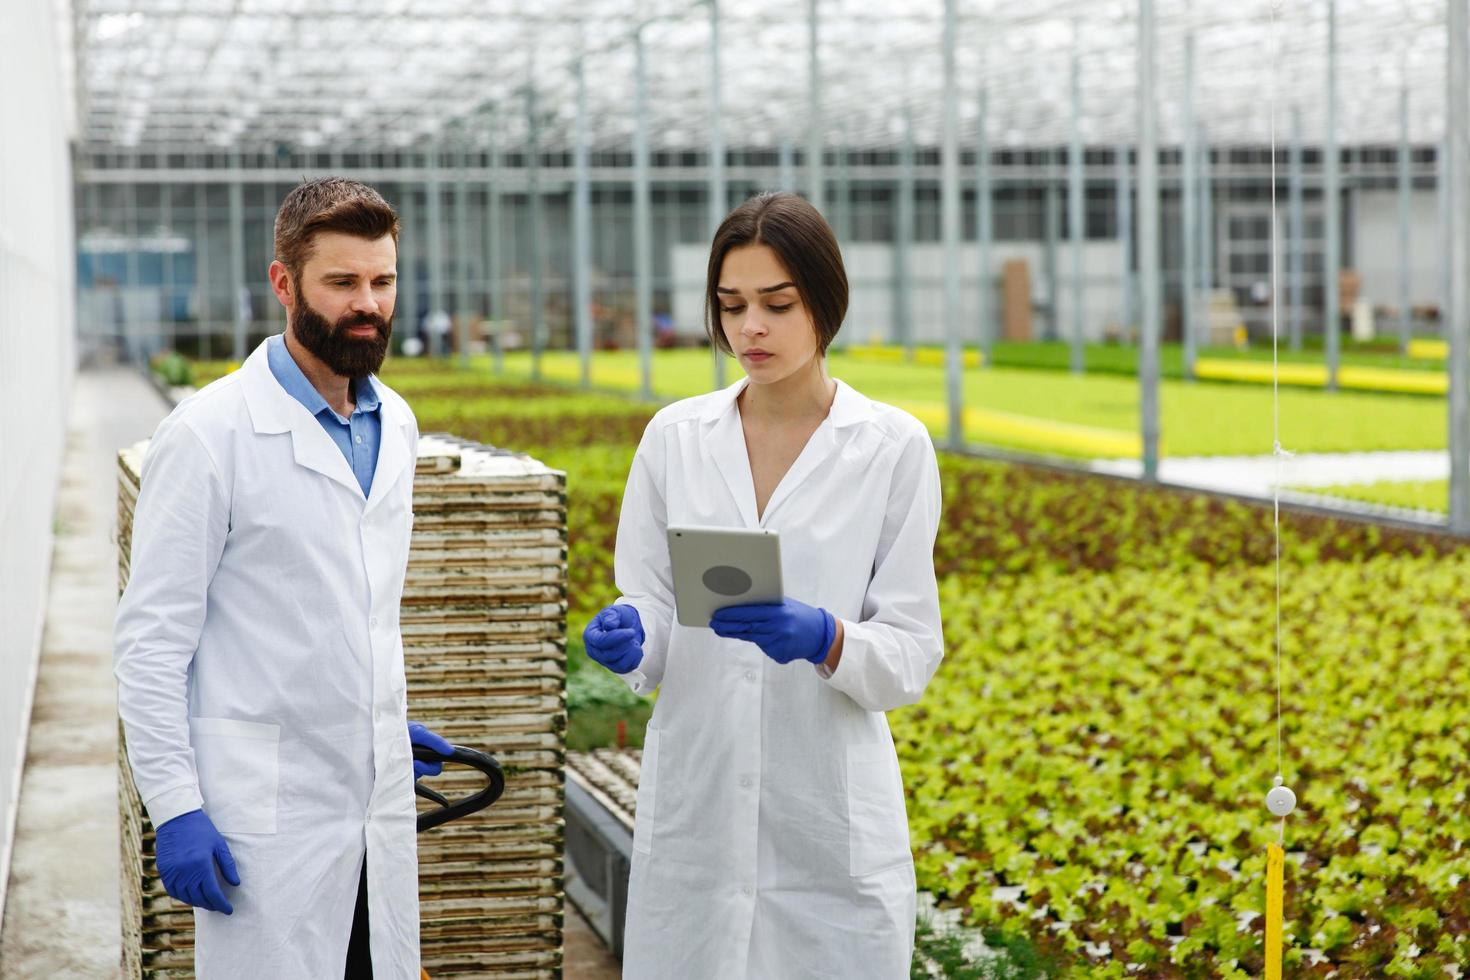 Two researchers in laboratory robes walk around the greenhouse with a tablet photo